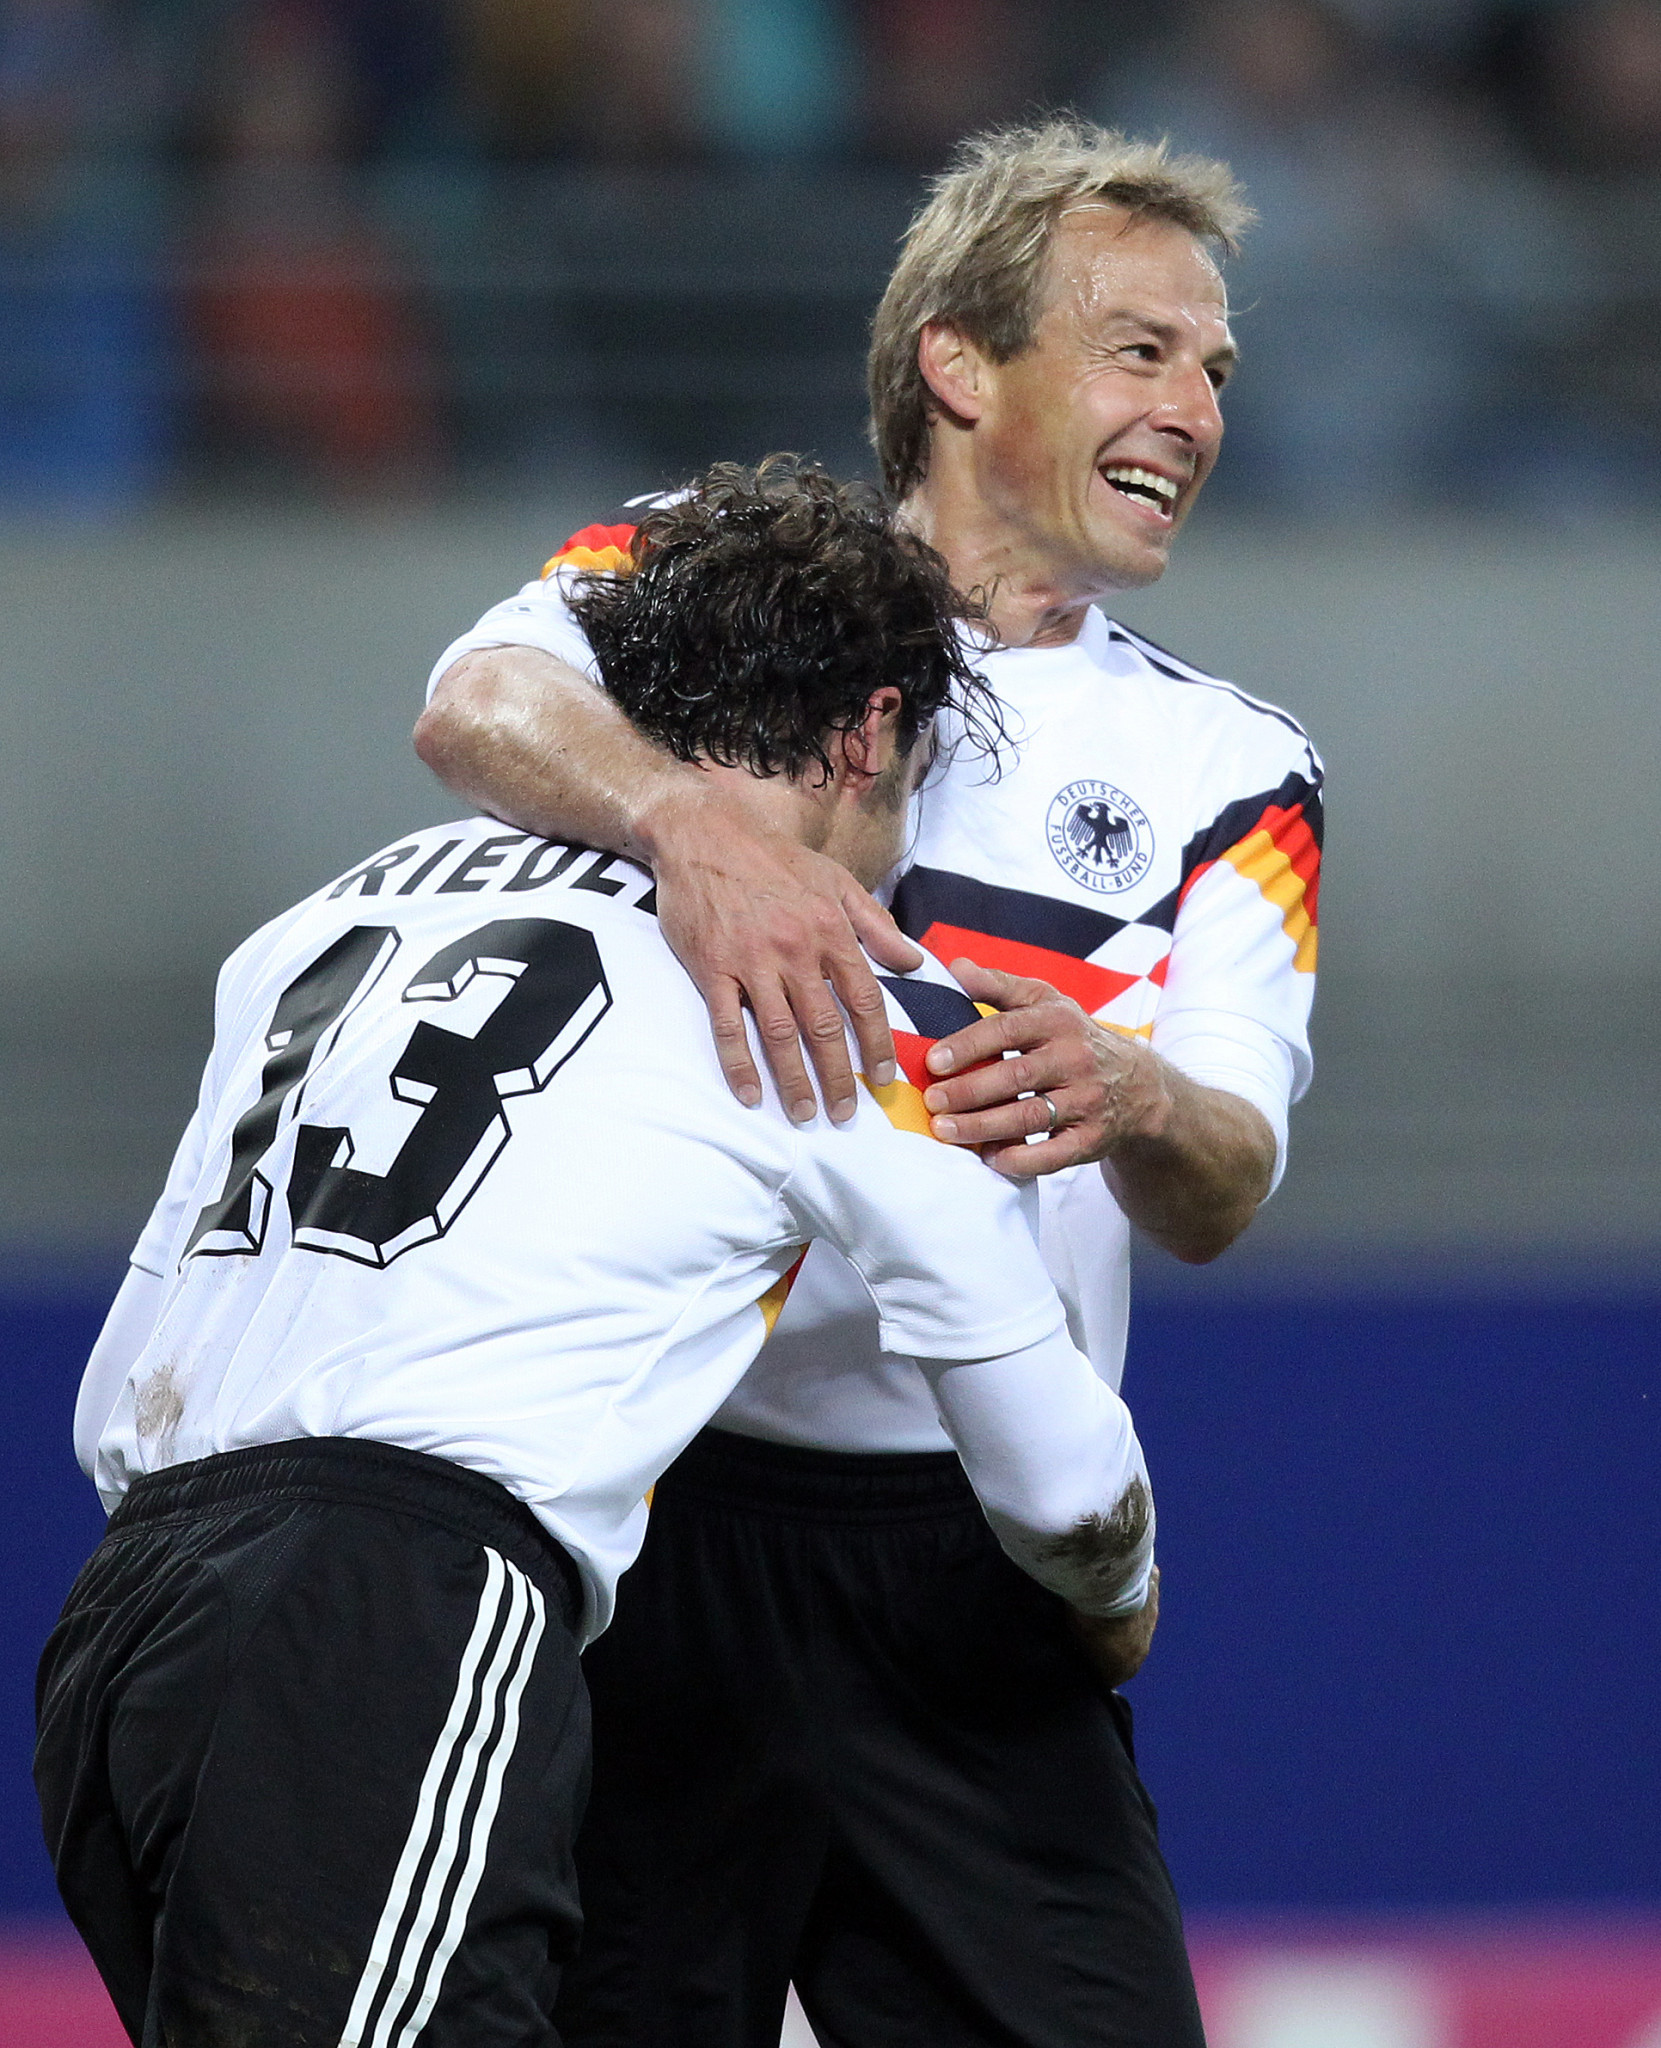 Jürgen Klinsmann, a World Cup winner for Germany was known for his occasional diving prowess ©Getty Images